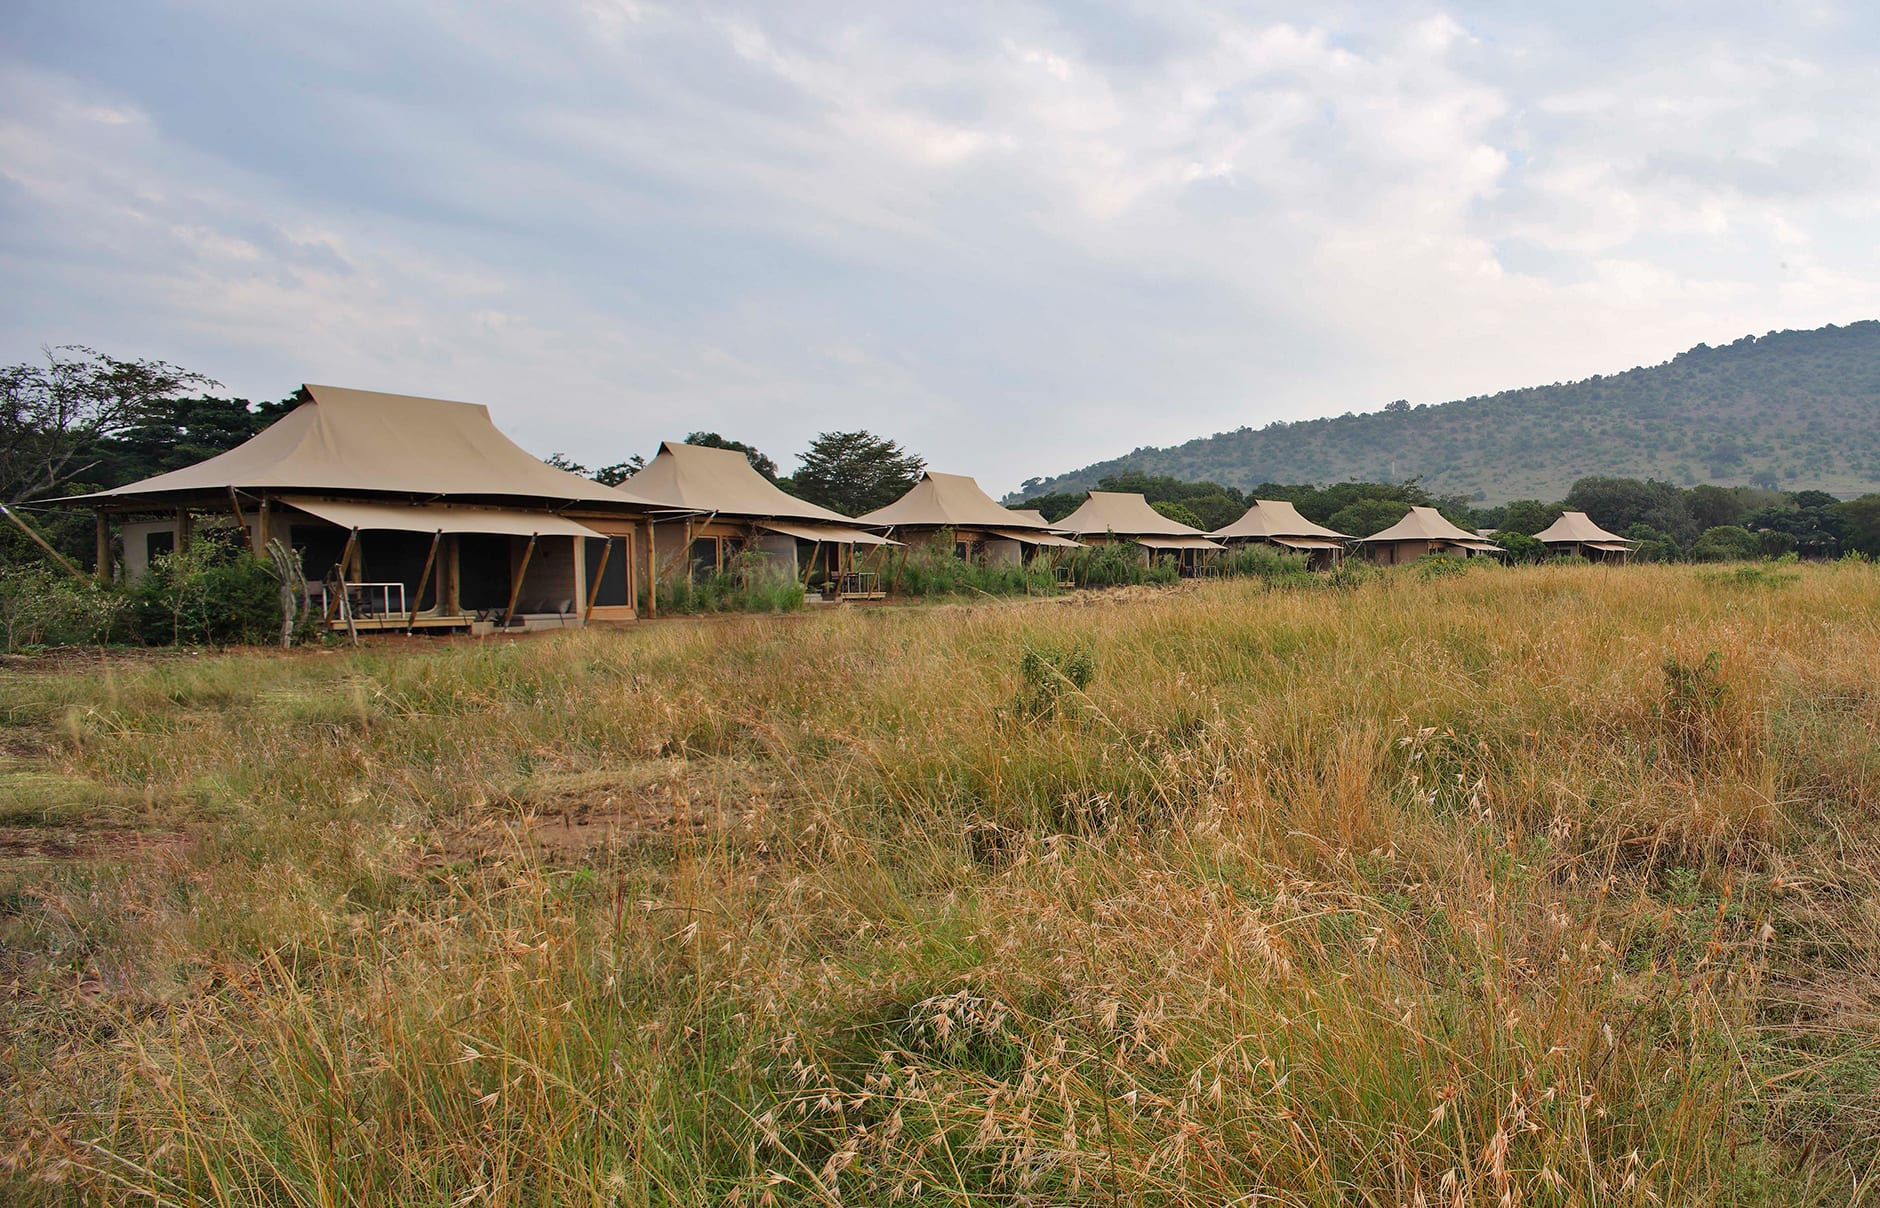 &Beyond Kichwa Tembo Tented Camp, Masai Mara, Kenya. Review by TravelPlusStyle. Photo © &Beyond